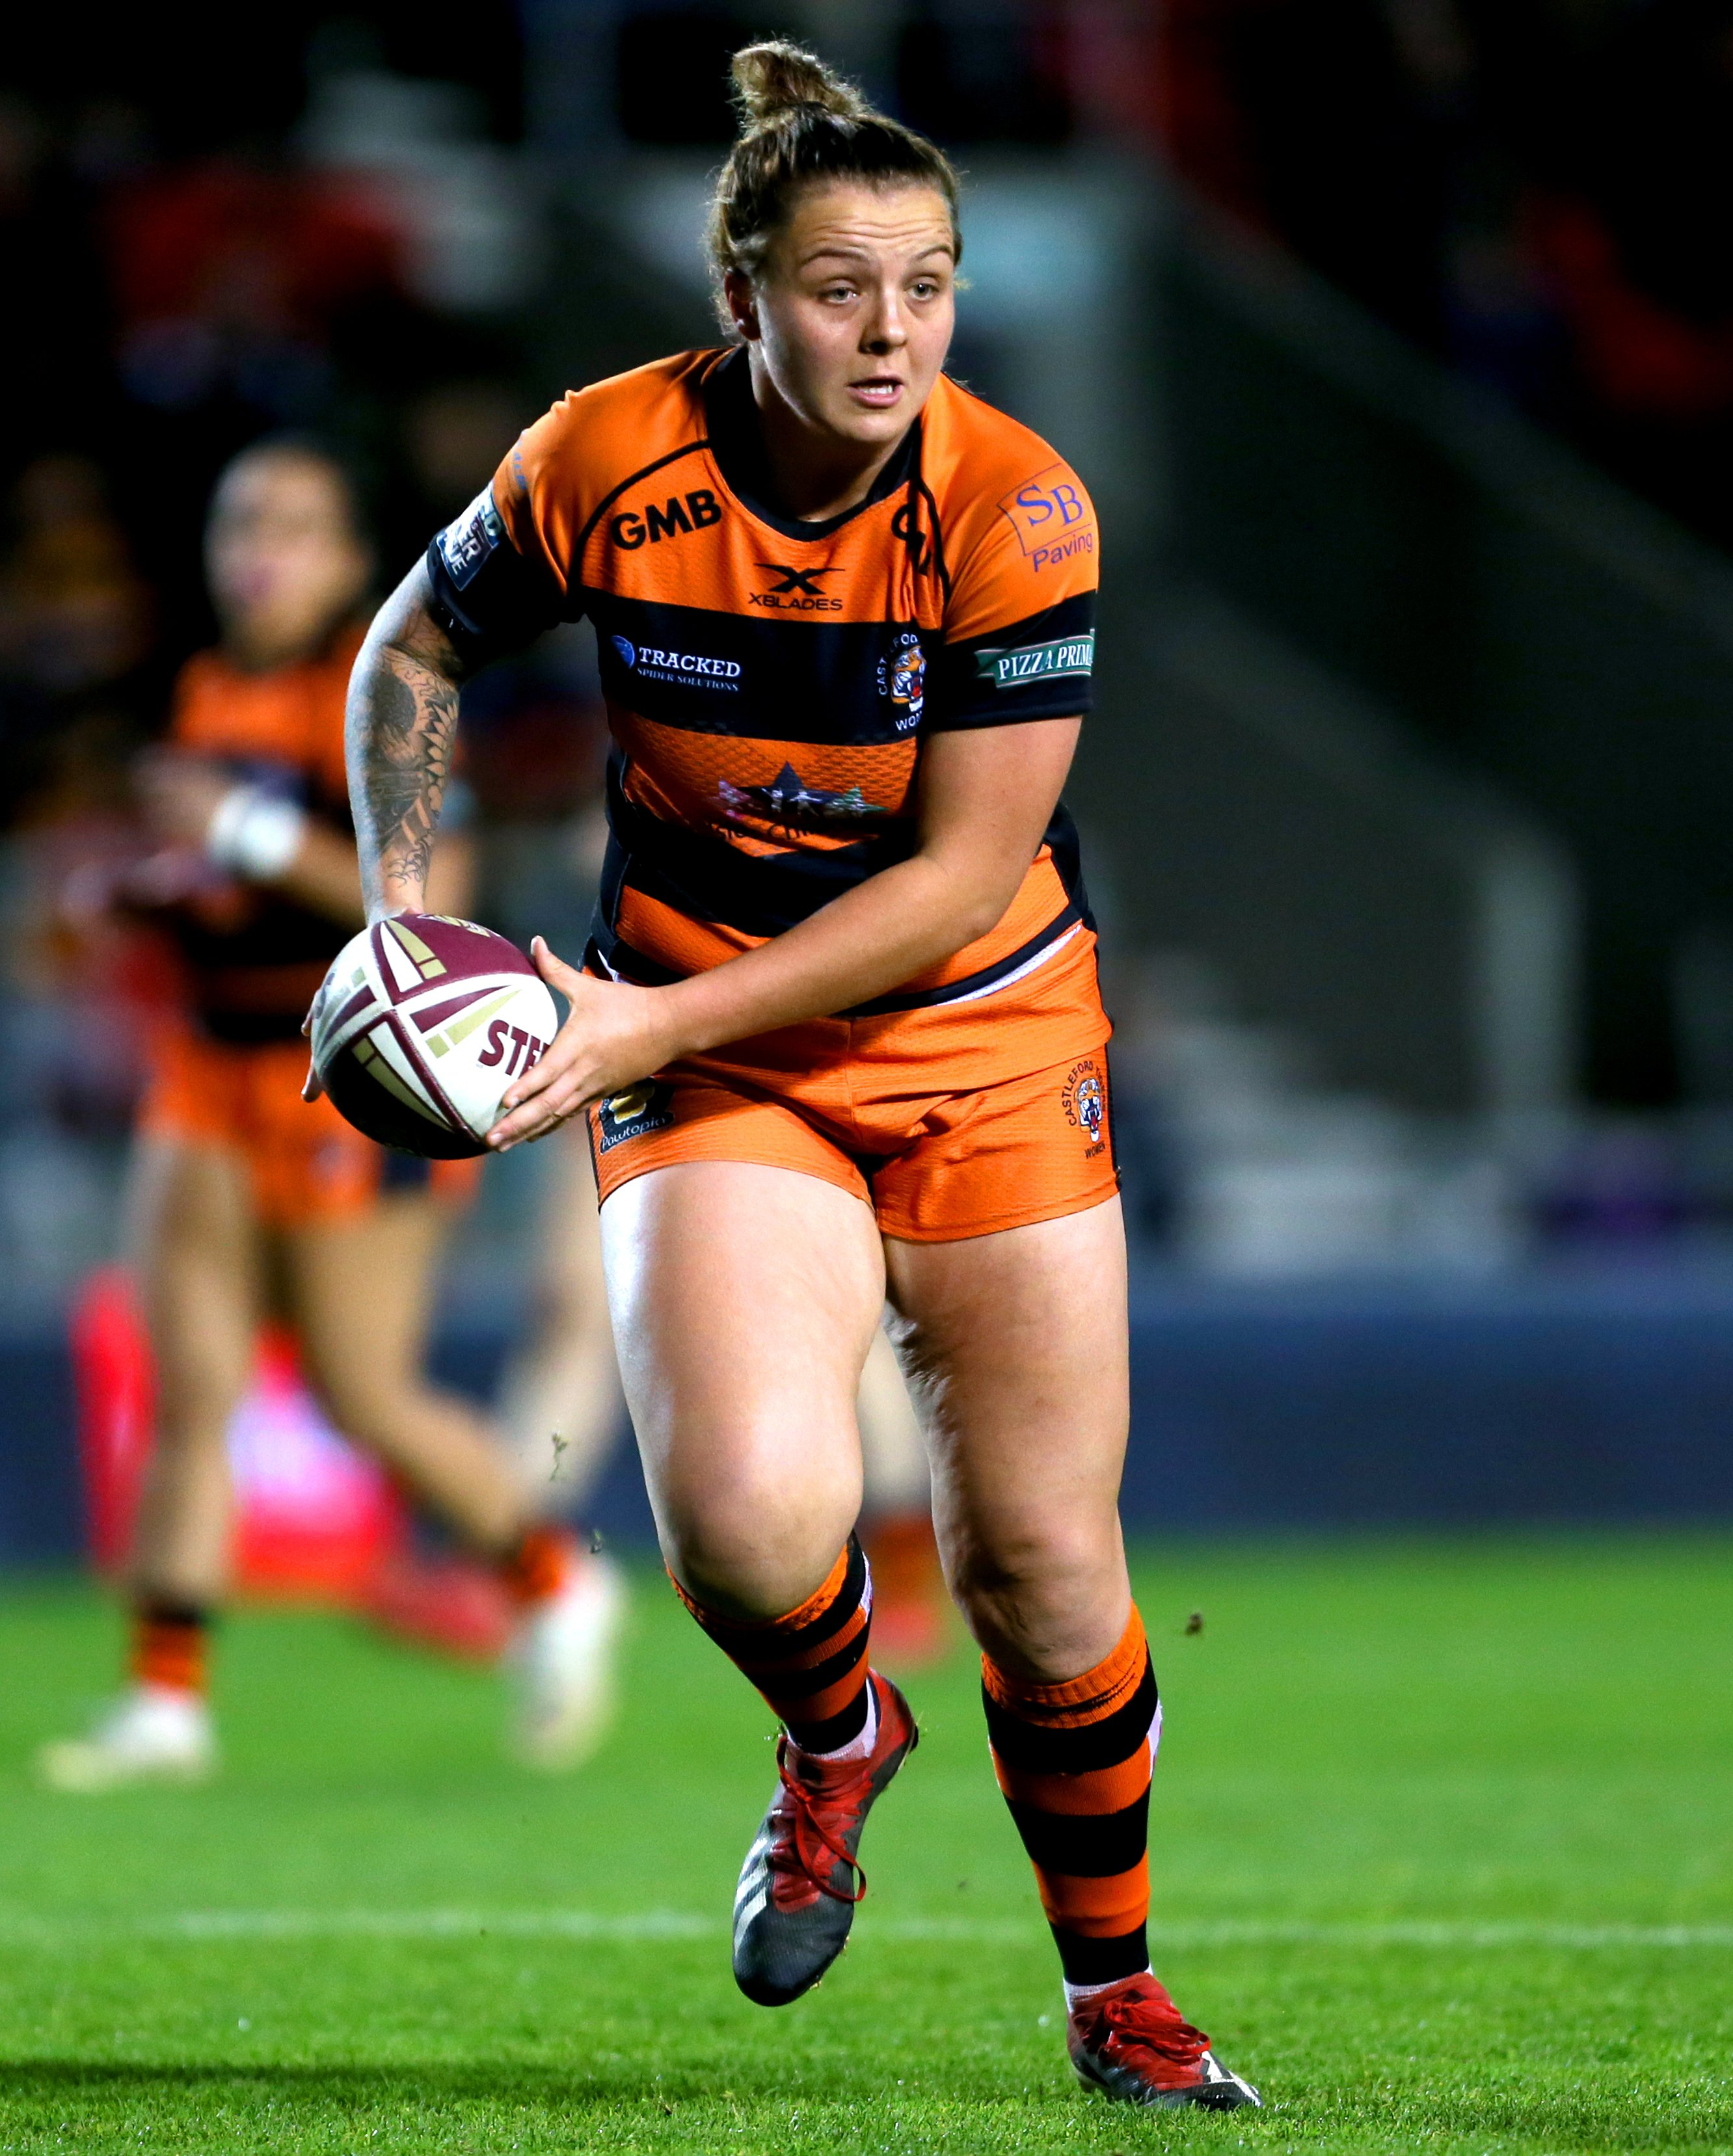 You are not alone: Castleford Tigers' Rhiannion Marshall has a message for people struggling with their mental health during lockdown